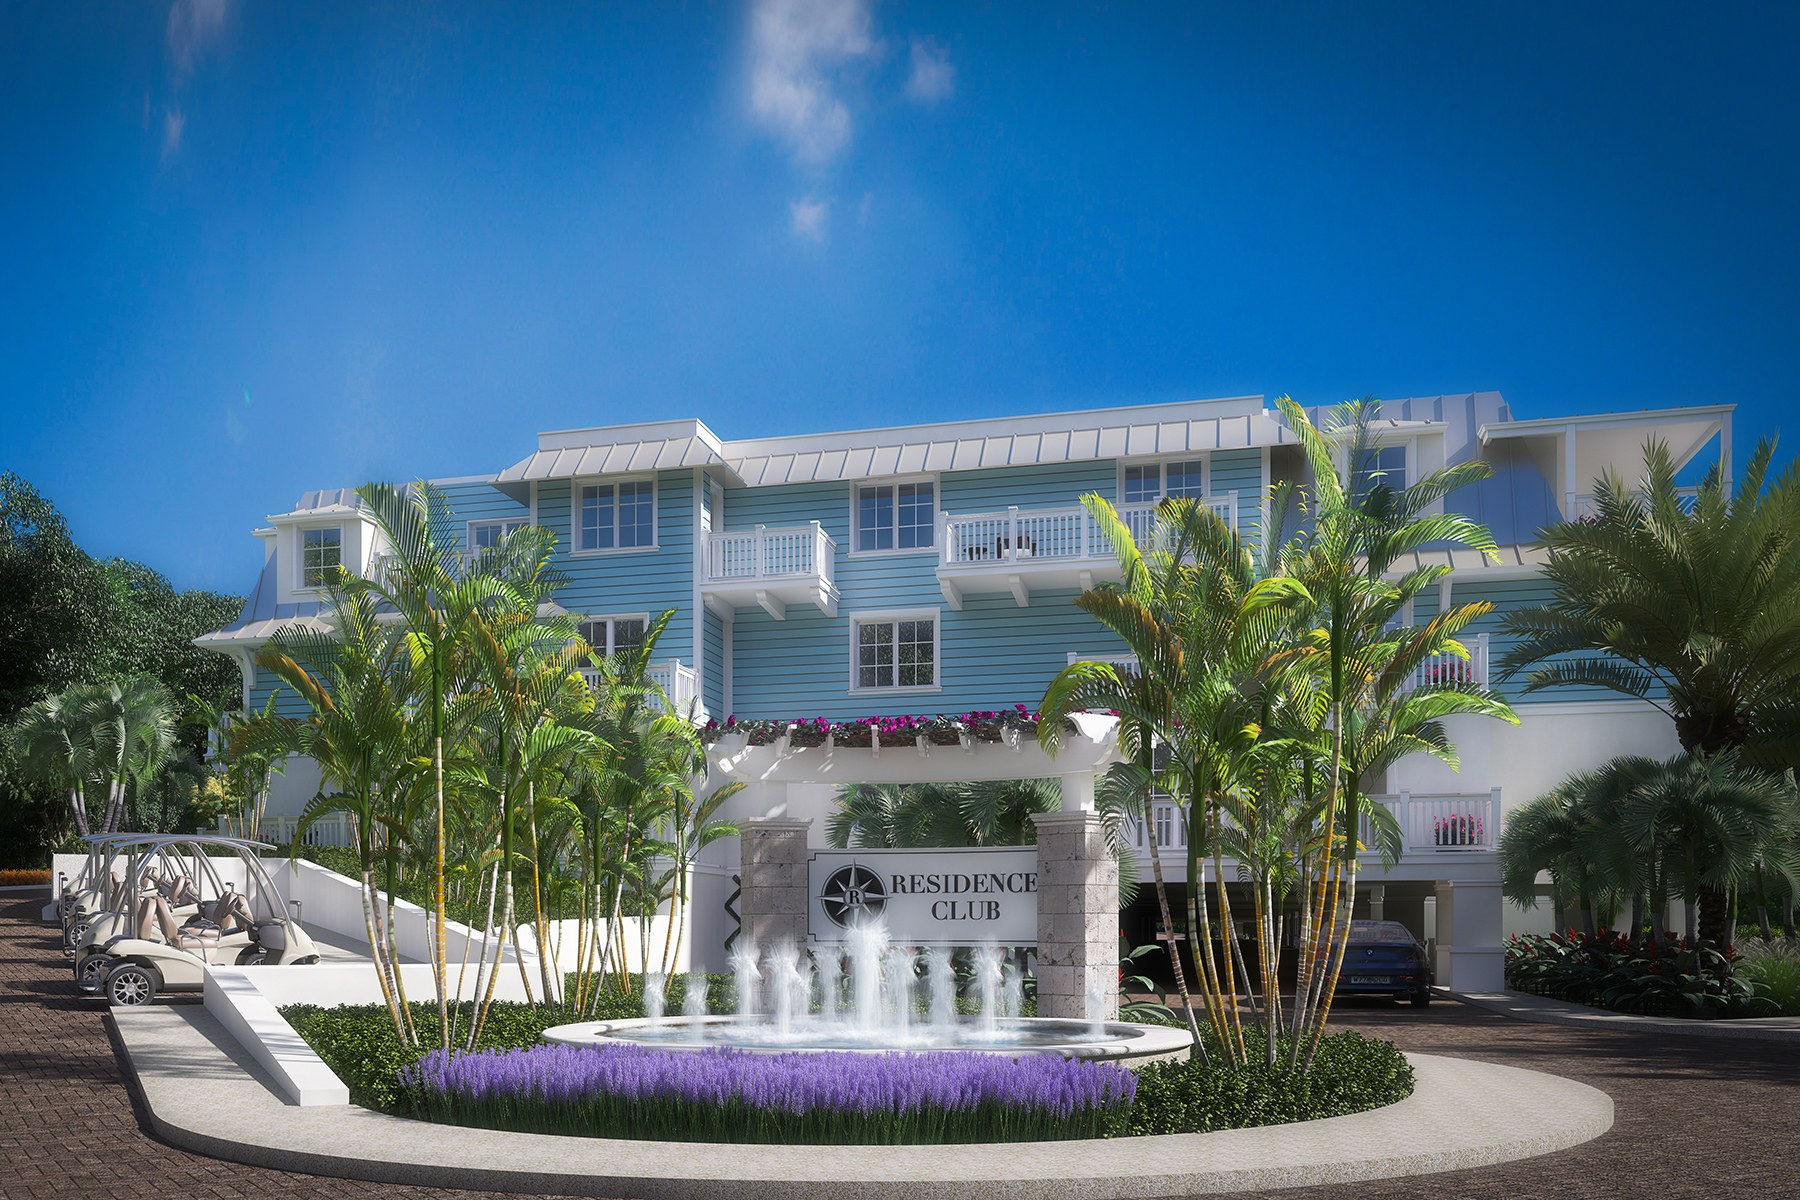 Condominiums for Sale at 120 Residence Lane, #C-120, Key Largo, FL 120 Residence Lane, C-120, Key Largo, Florida 33037 United States